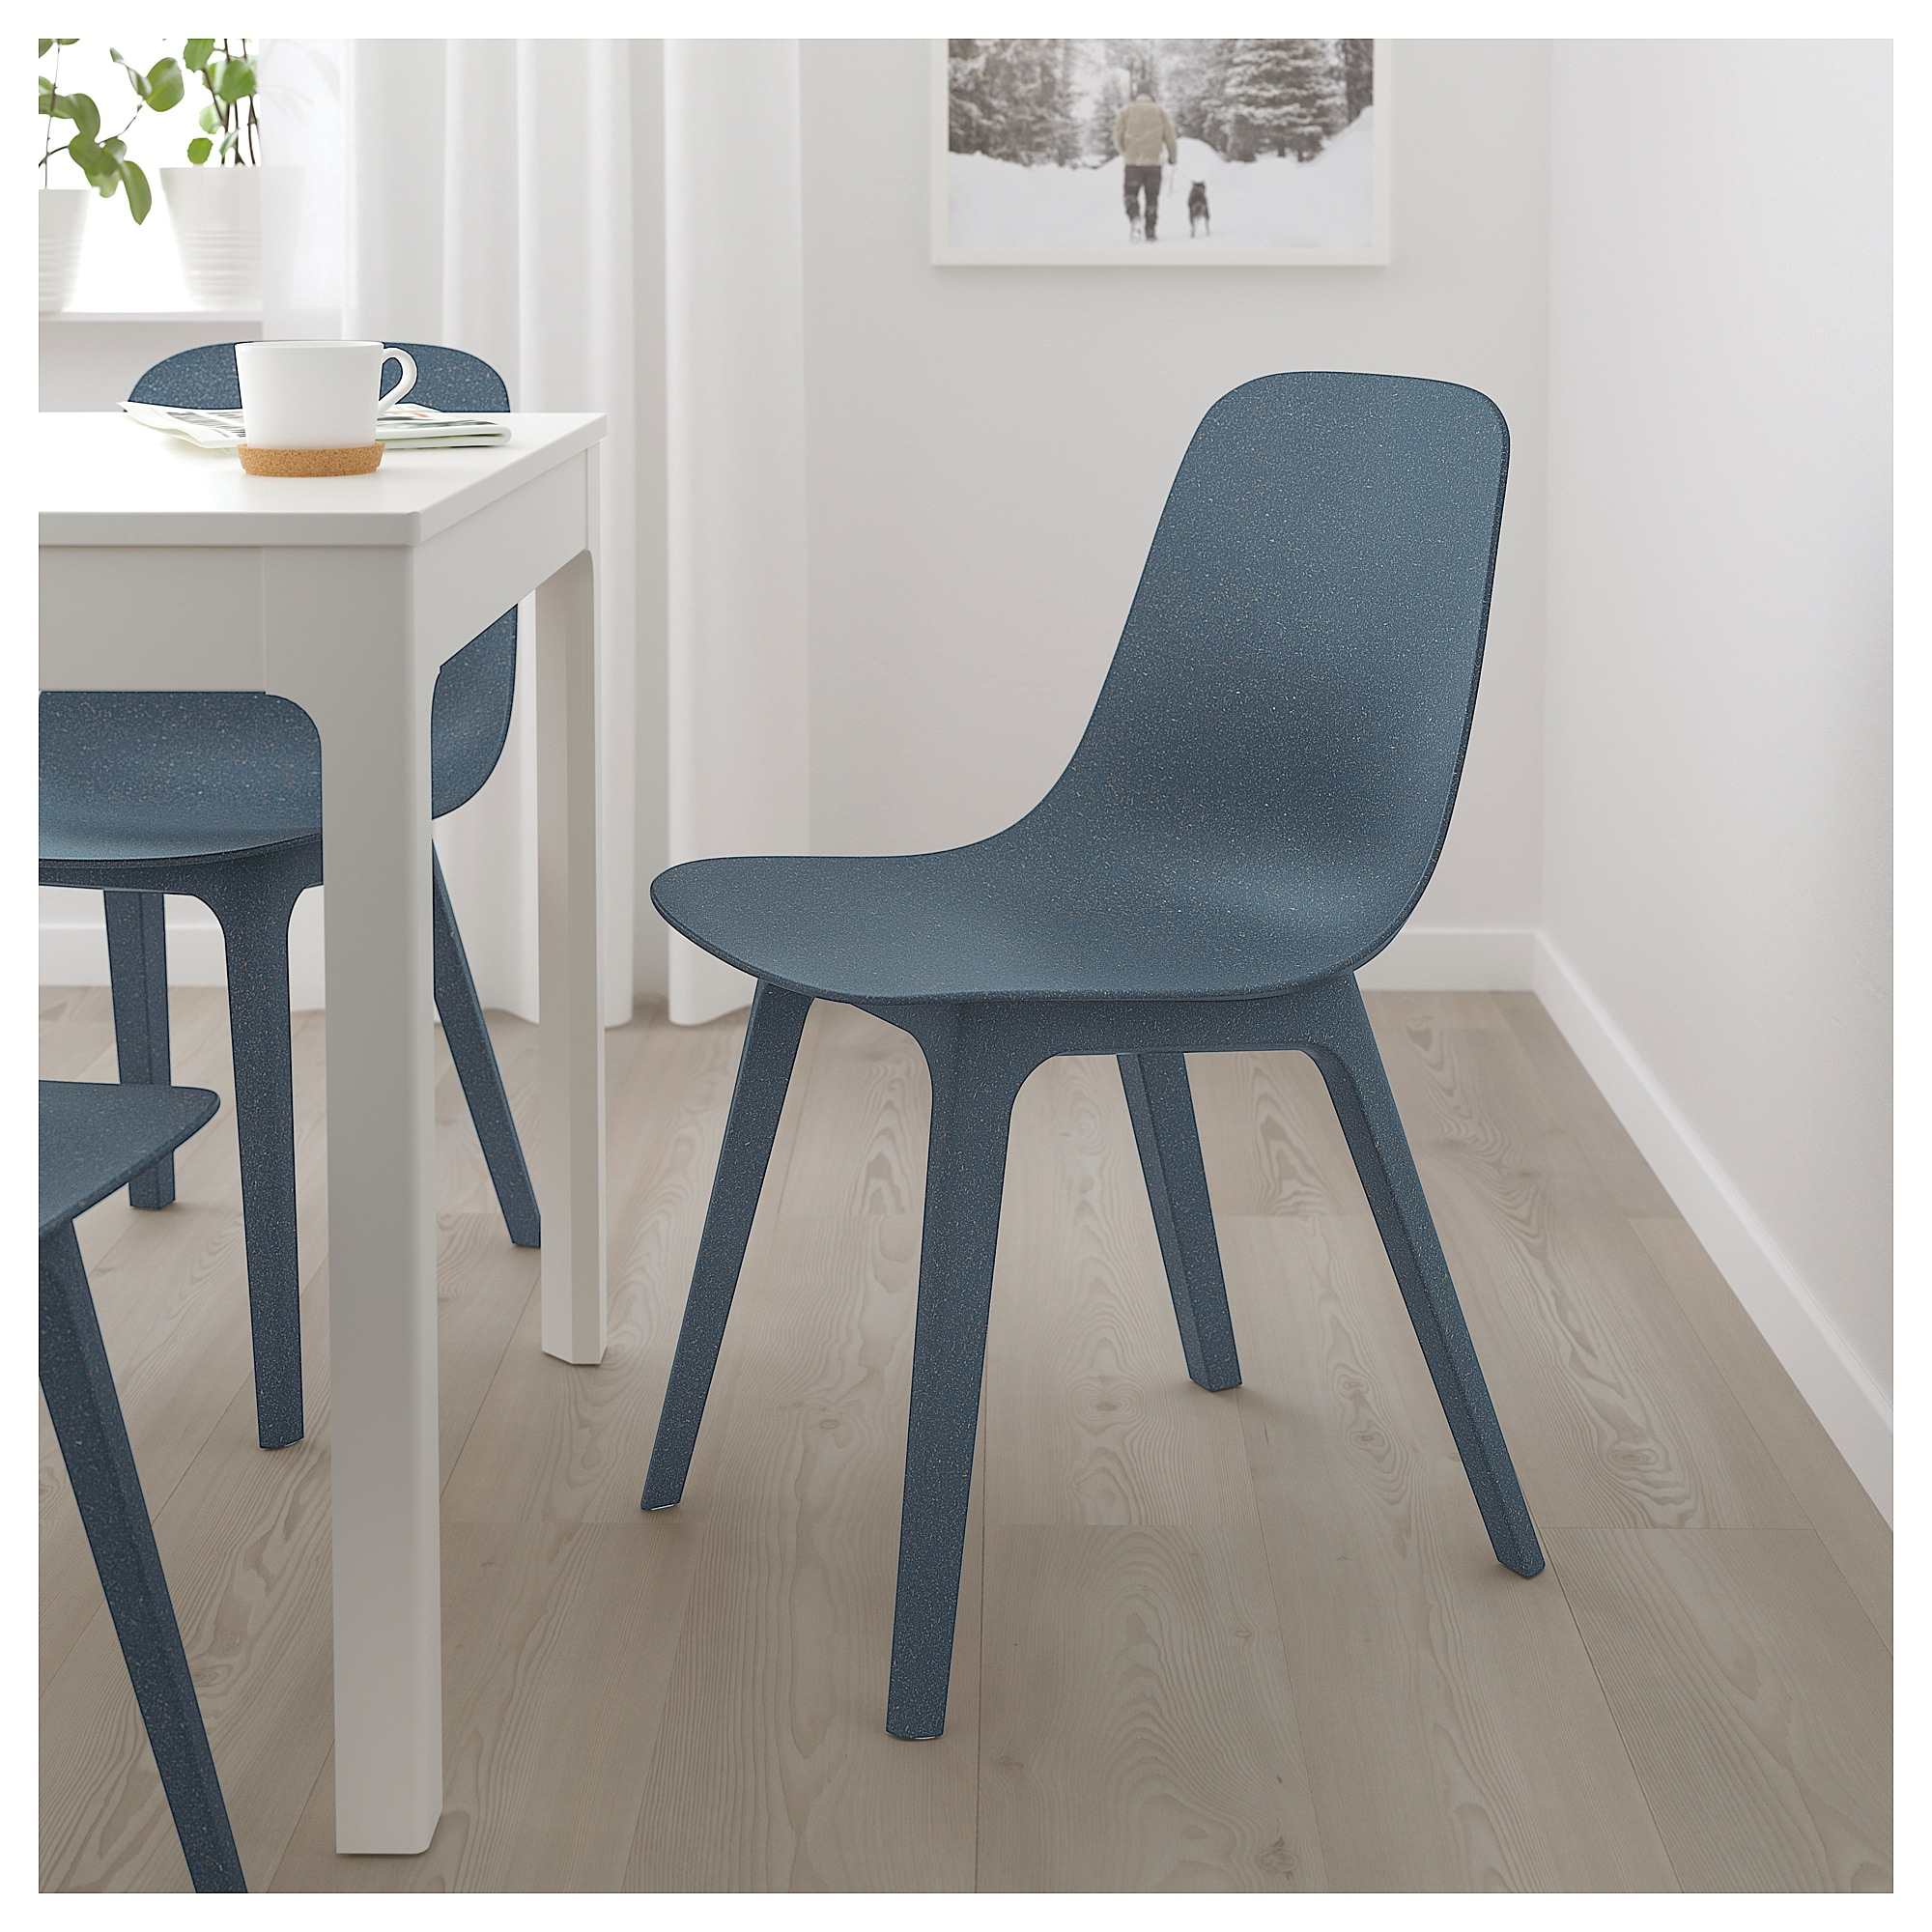 Odger Blue Chair Ikea Dining Chairs Retro Dining Chairs Ikea Chair